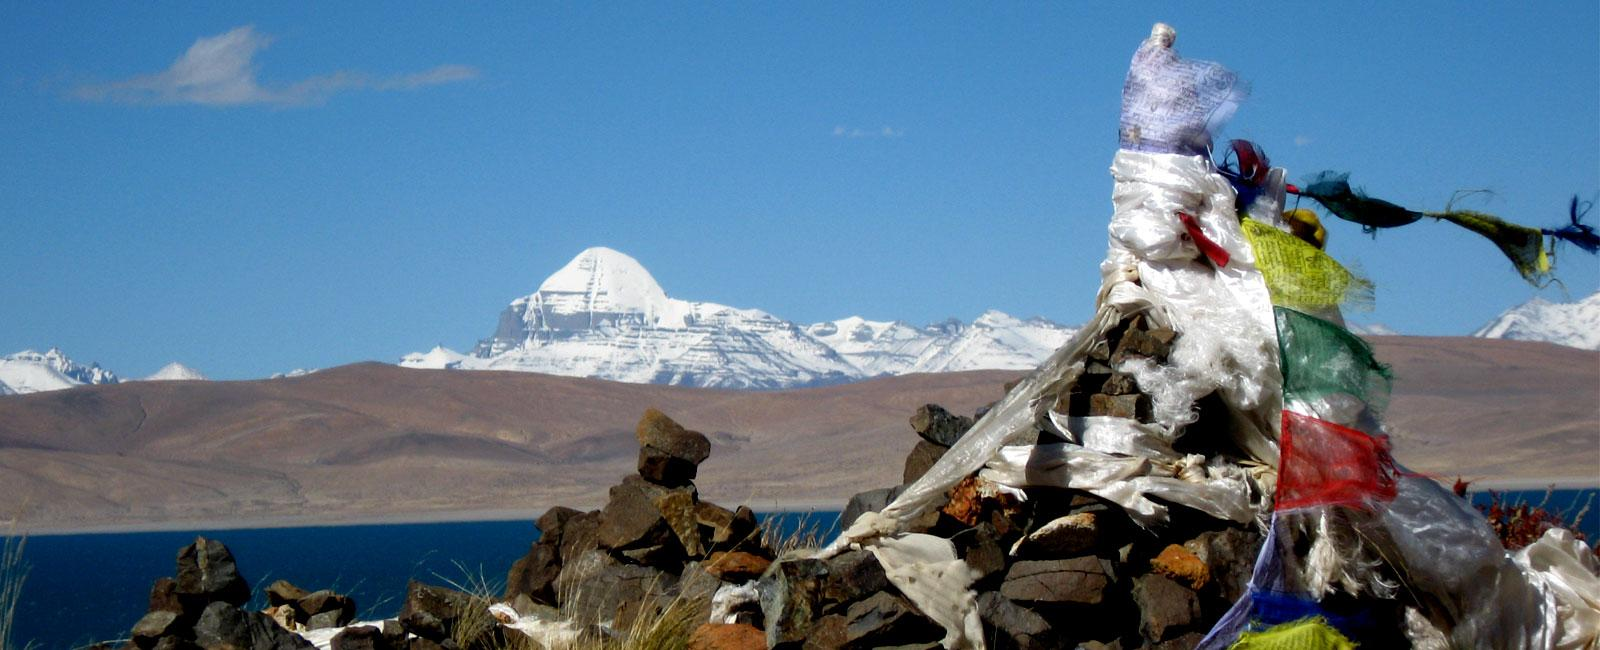 Kailash Journey - Life Time Pilgrimage Journey on The Roof of The World